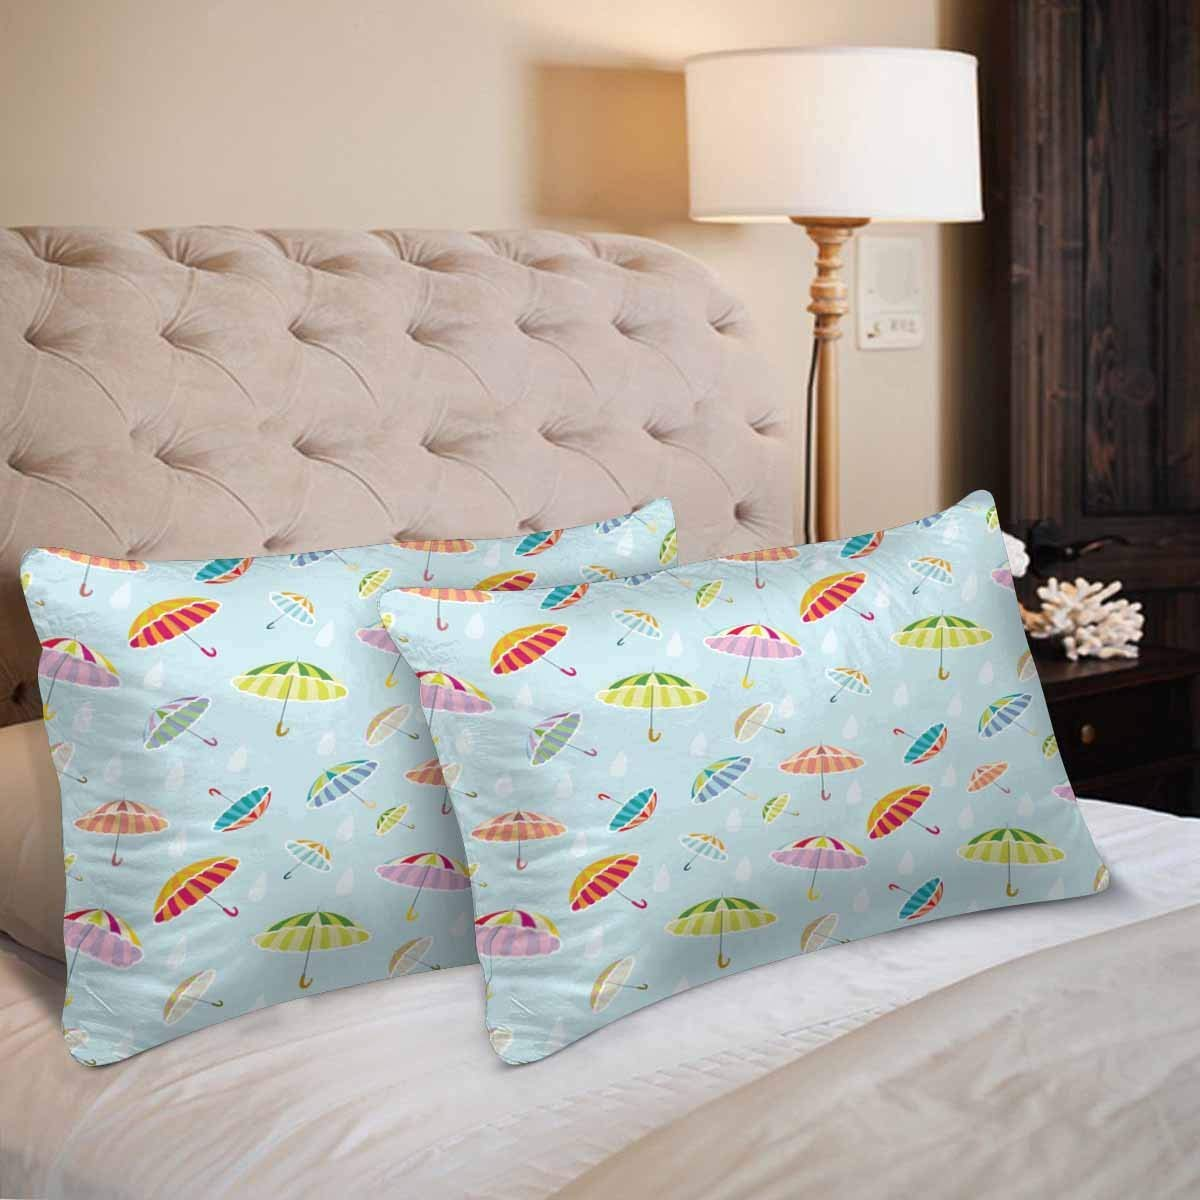 GCKG Beautiful Colorful Umbrella Pillow Cases Pillowcase 20x30 inches Set of 2 - image 1 of 4